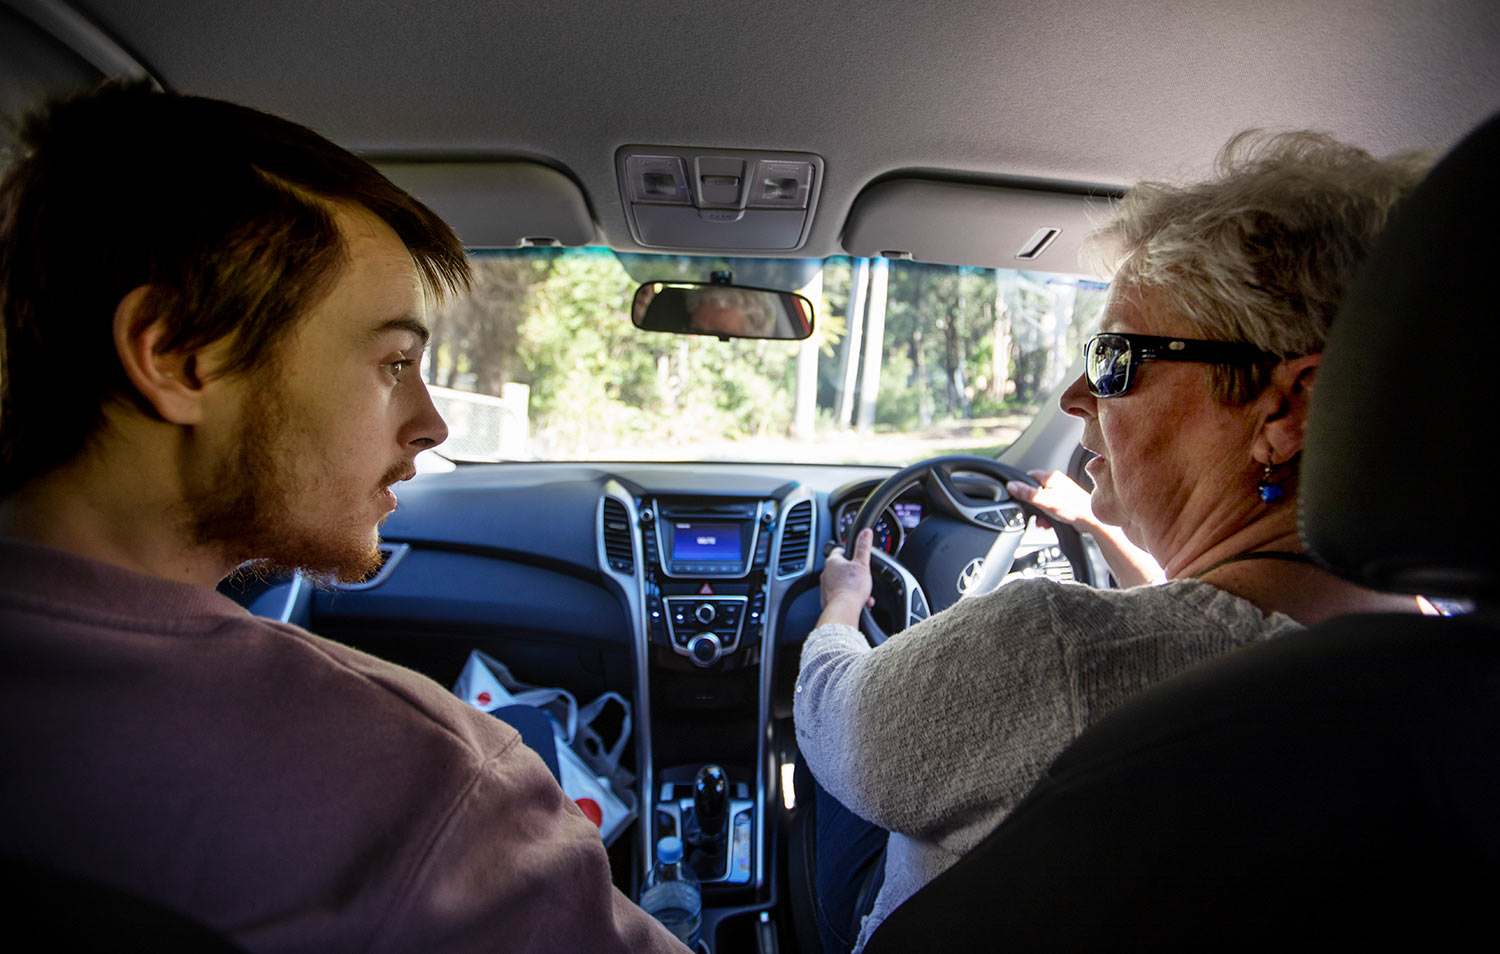 Deb Ware, right, drives her son, Sam, back to her home for the first time since she last found him overdosing there three weeks earlier in Fountaindale, Central Coast, Australia, Friday, July 19, 2019. (AP Photo/David Goldman)